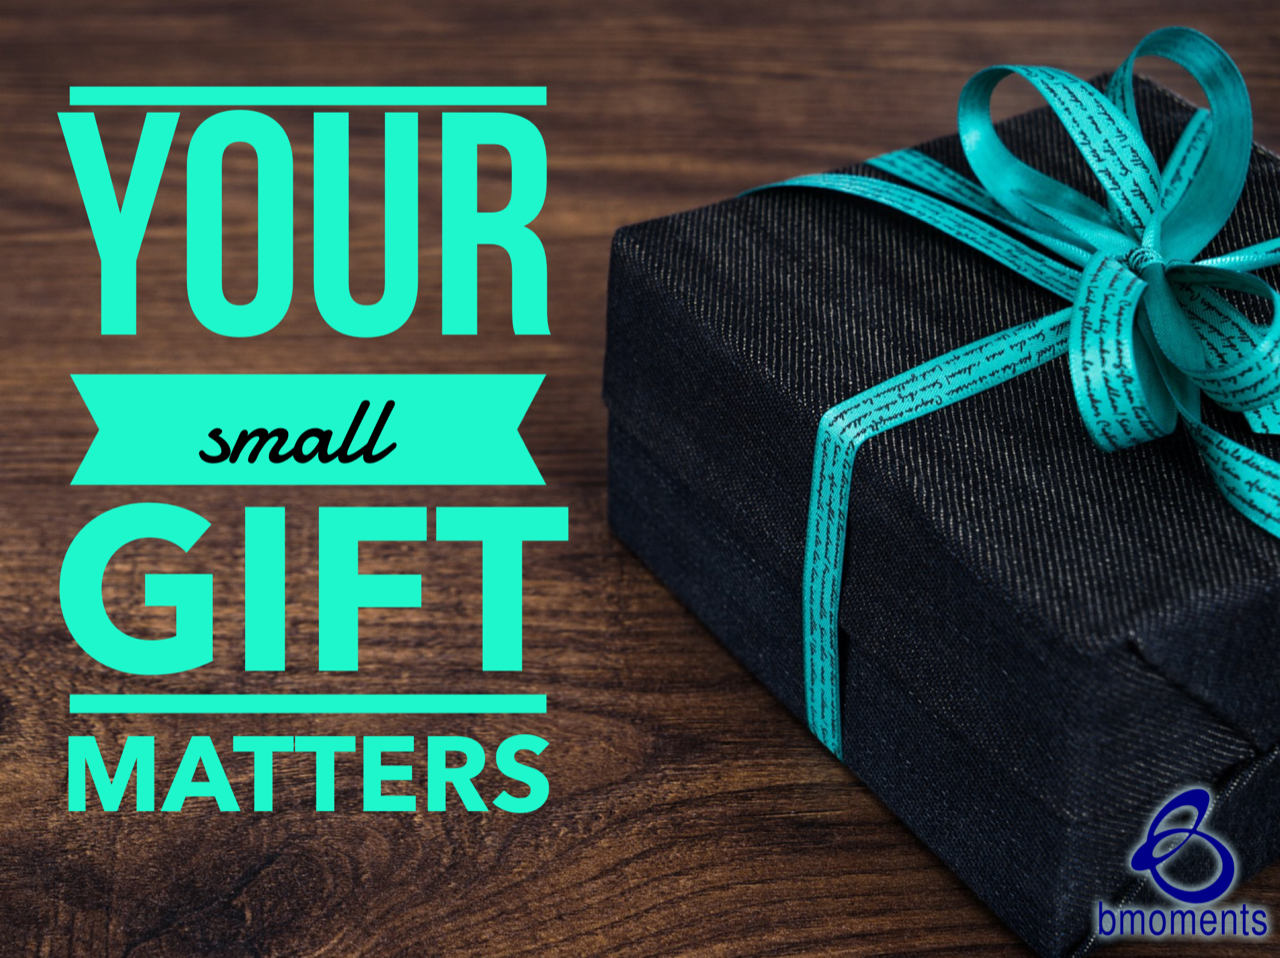 This Giving Tuesday Your Gift—Large or Small—Matters